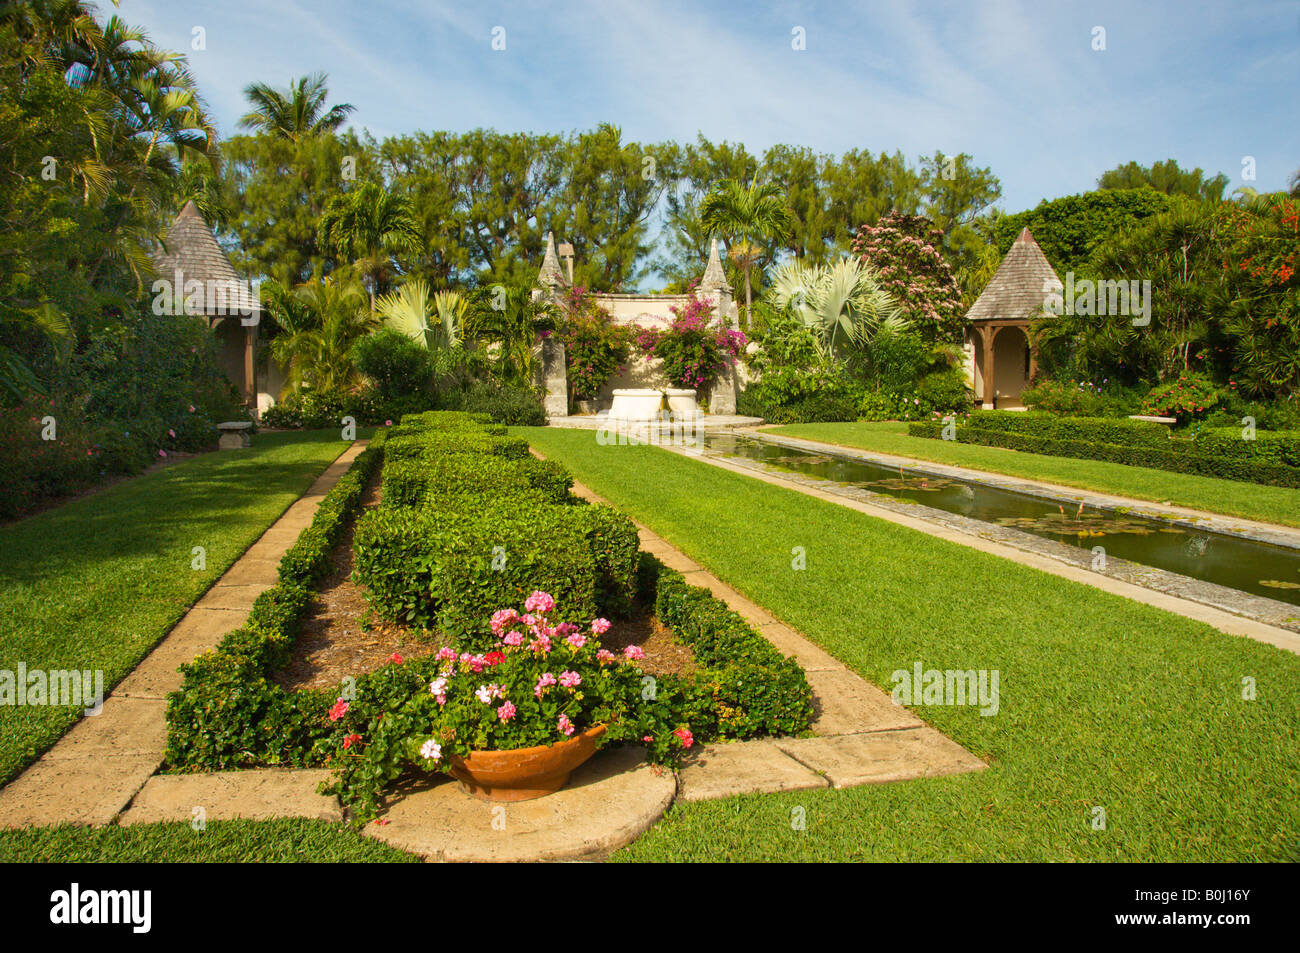 Churches in palm beach gardens garden ftempo for St patrick s church palm beach gardens